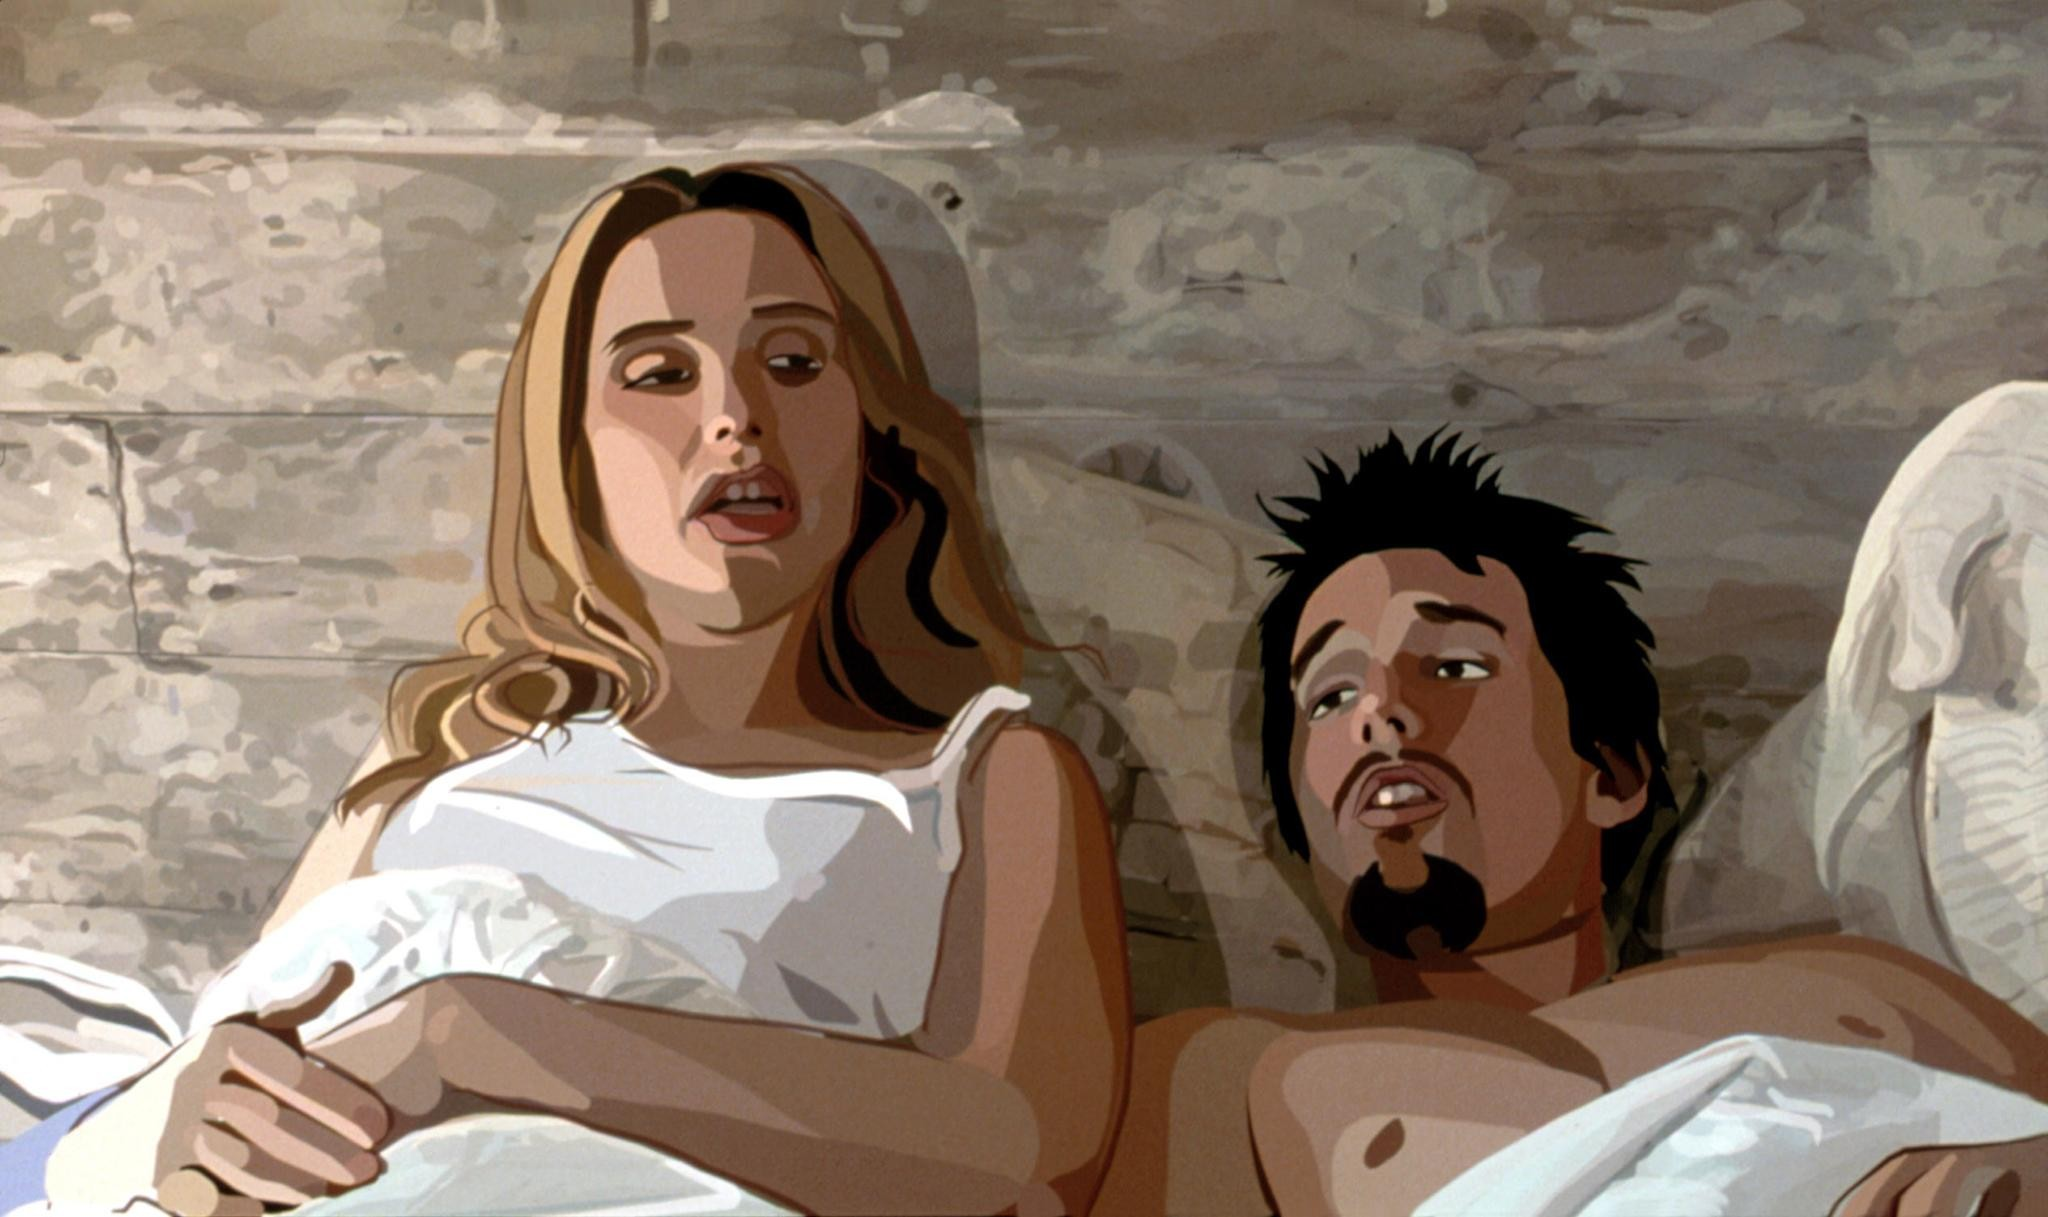 existentialism and waking life In a sense, many (if not most) narrative films could be considered existential, or could have existentialist theories applied to them however, there are not as many films 10 existential films for philosophy students 10 i heart i cannot believe you didn't include waking life.